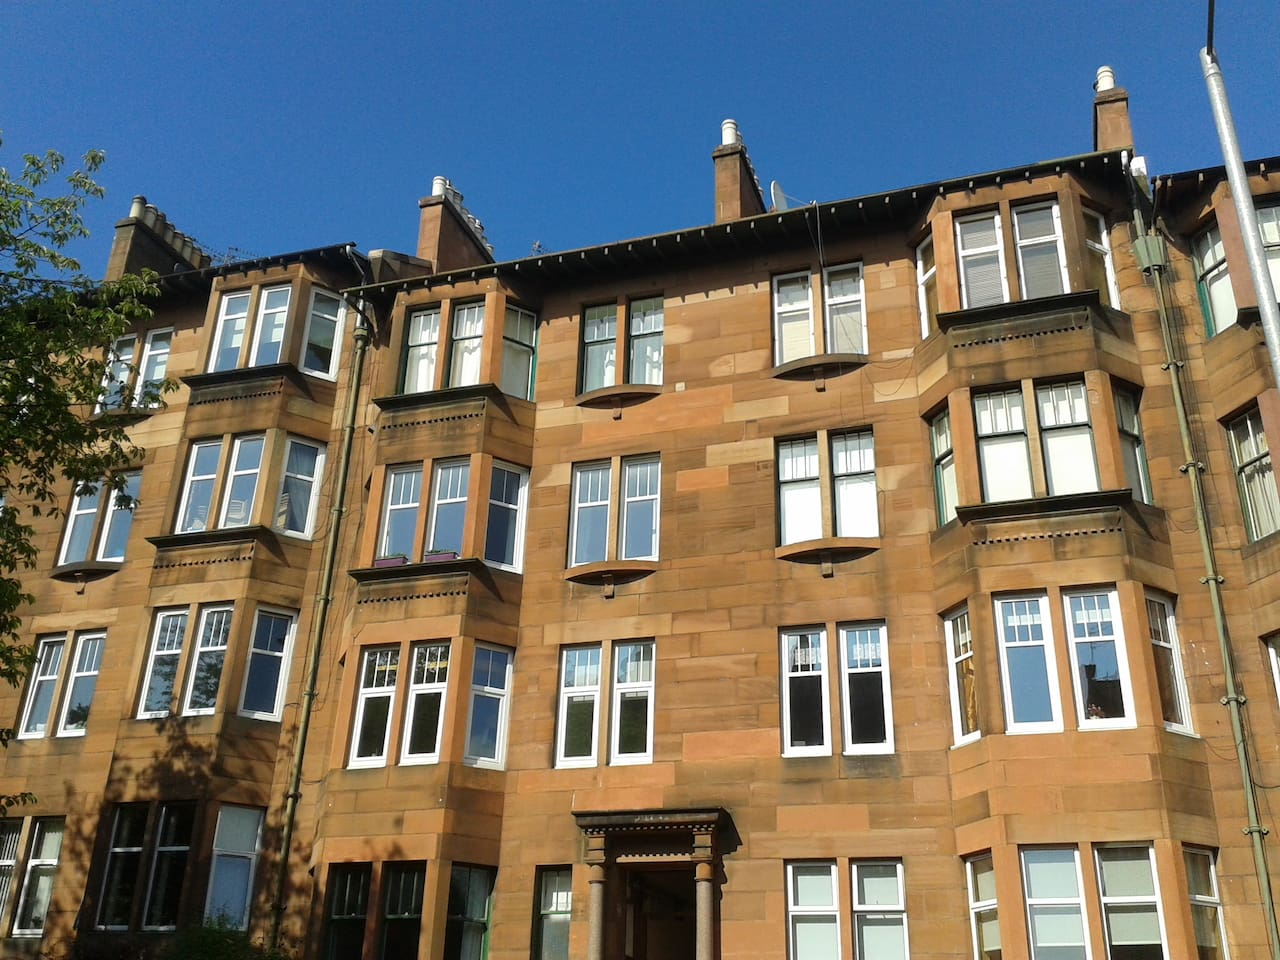 Tenement flat from the outside